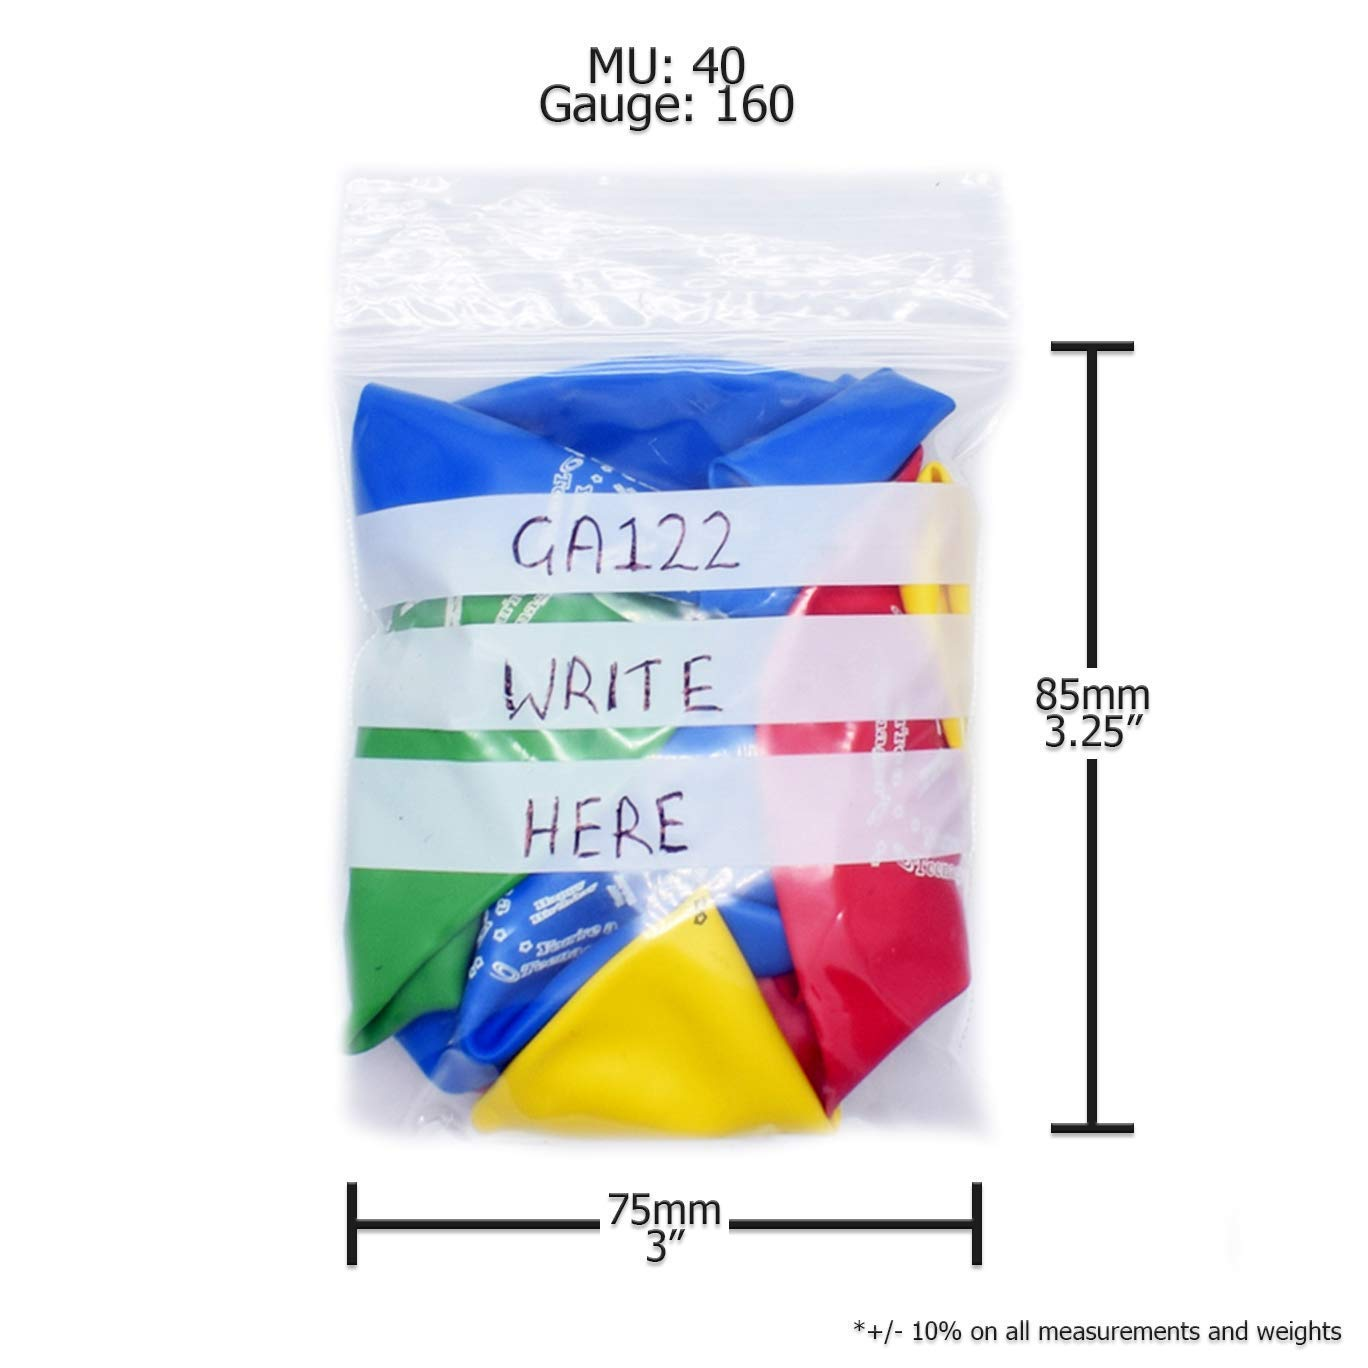 1.5 x 2.25-40mm x 55mm Grip Seal Plastic Poly Press /& Seal Bags With Write on Panel 100 x Simply Direct GA020 Assorted Sizes /& Quantities